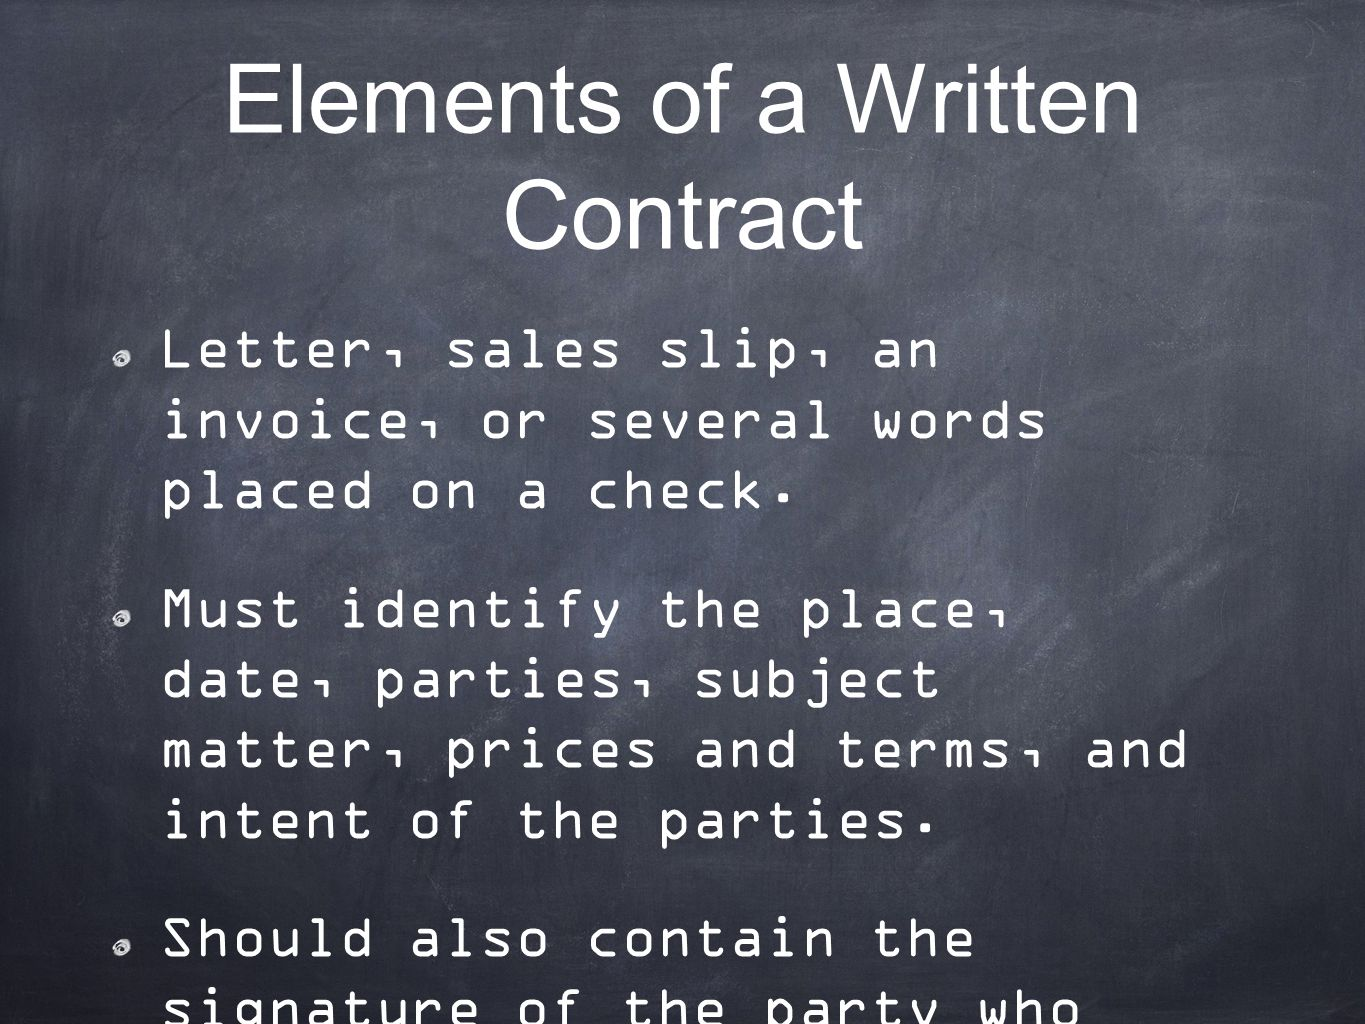 Elements of a Written Contract